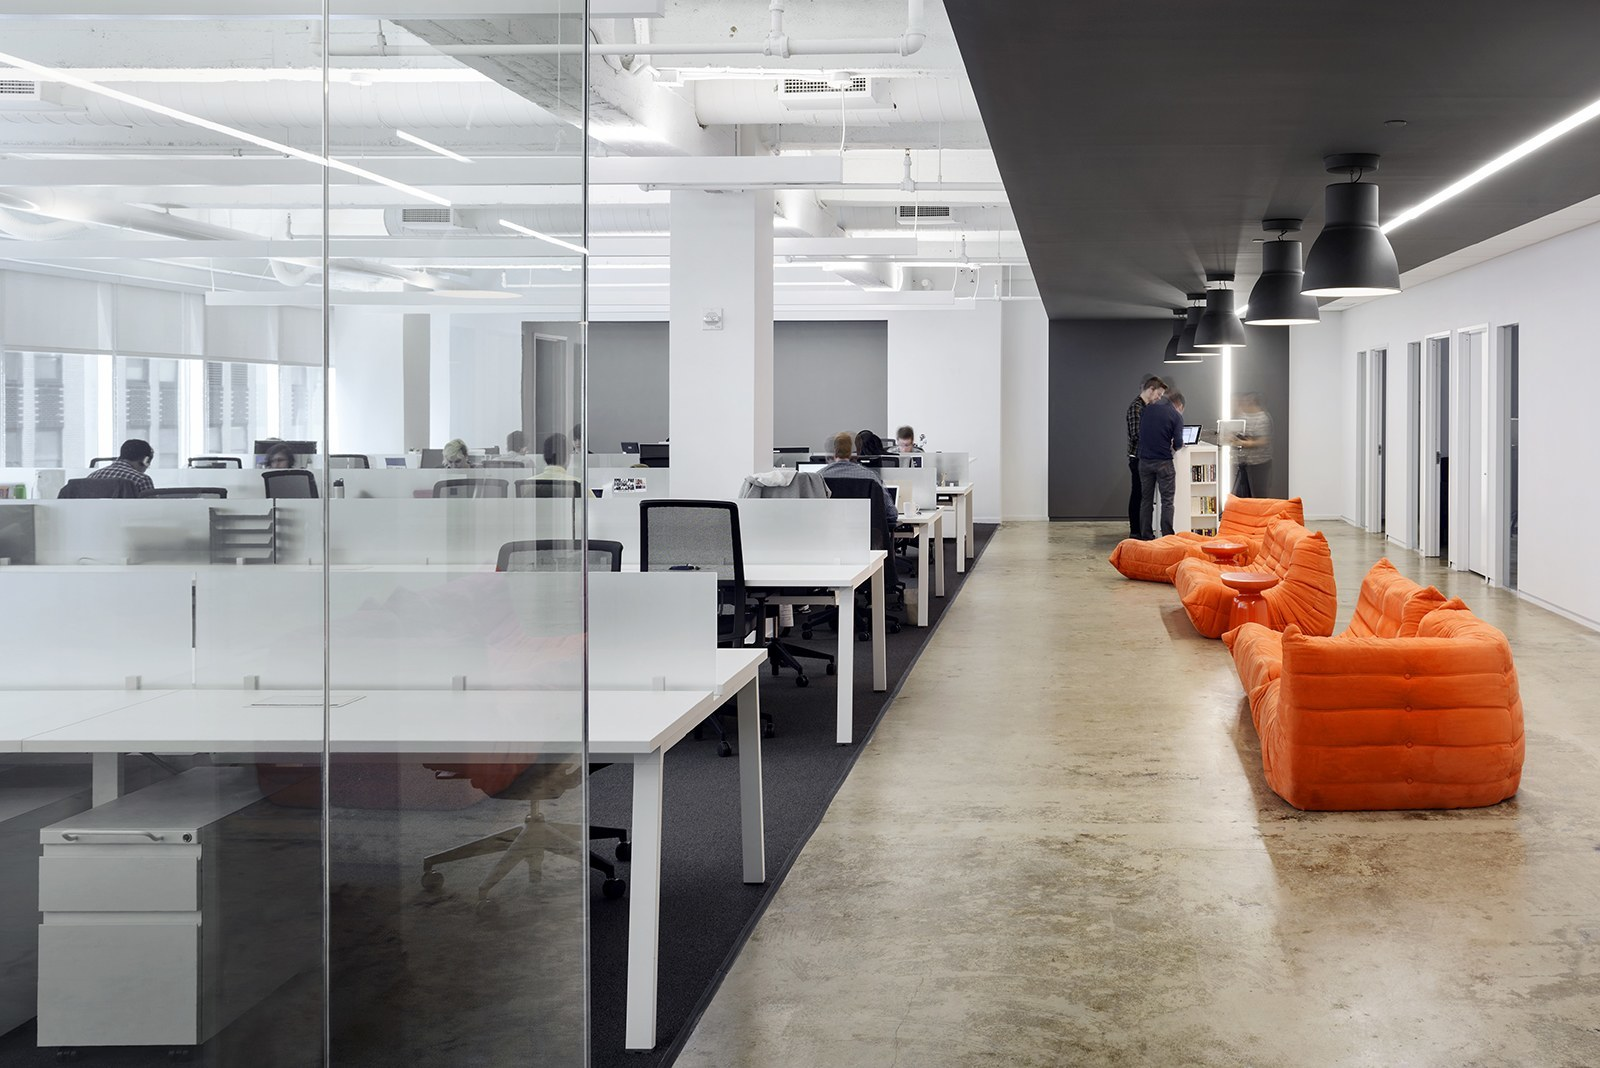 vox-media-nyc-office-4